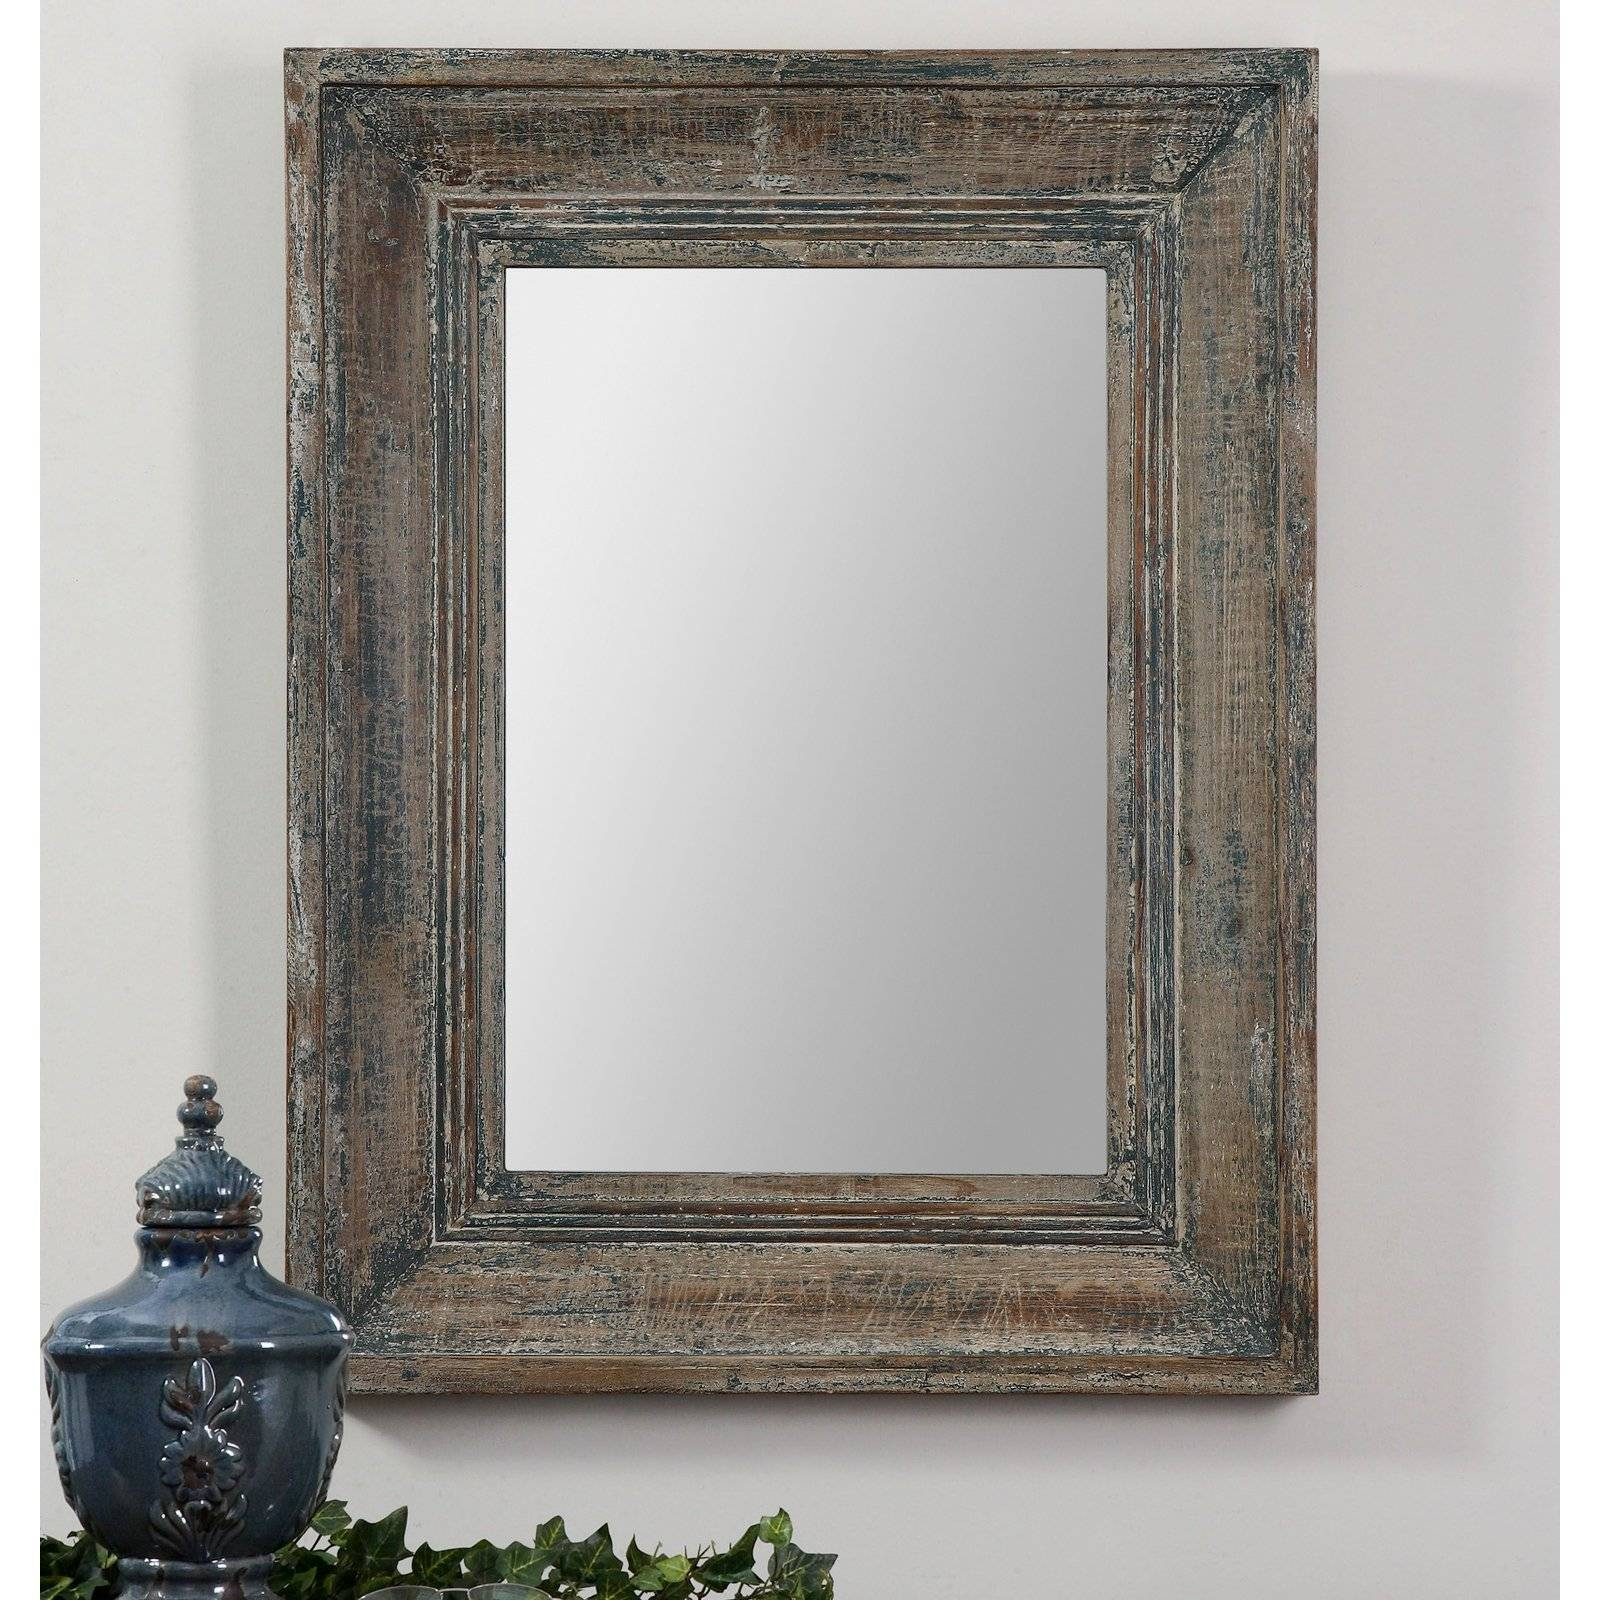 Uttermost Bozeman Mirror - 27.75W X 37.75H In. | Hayneedle for Blue Distressed Mirrors (Image 11 of 15)